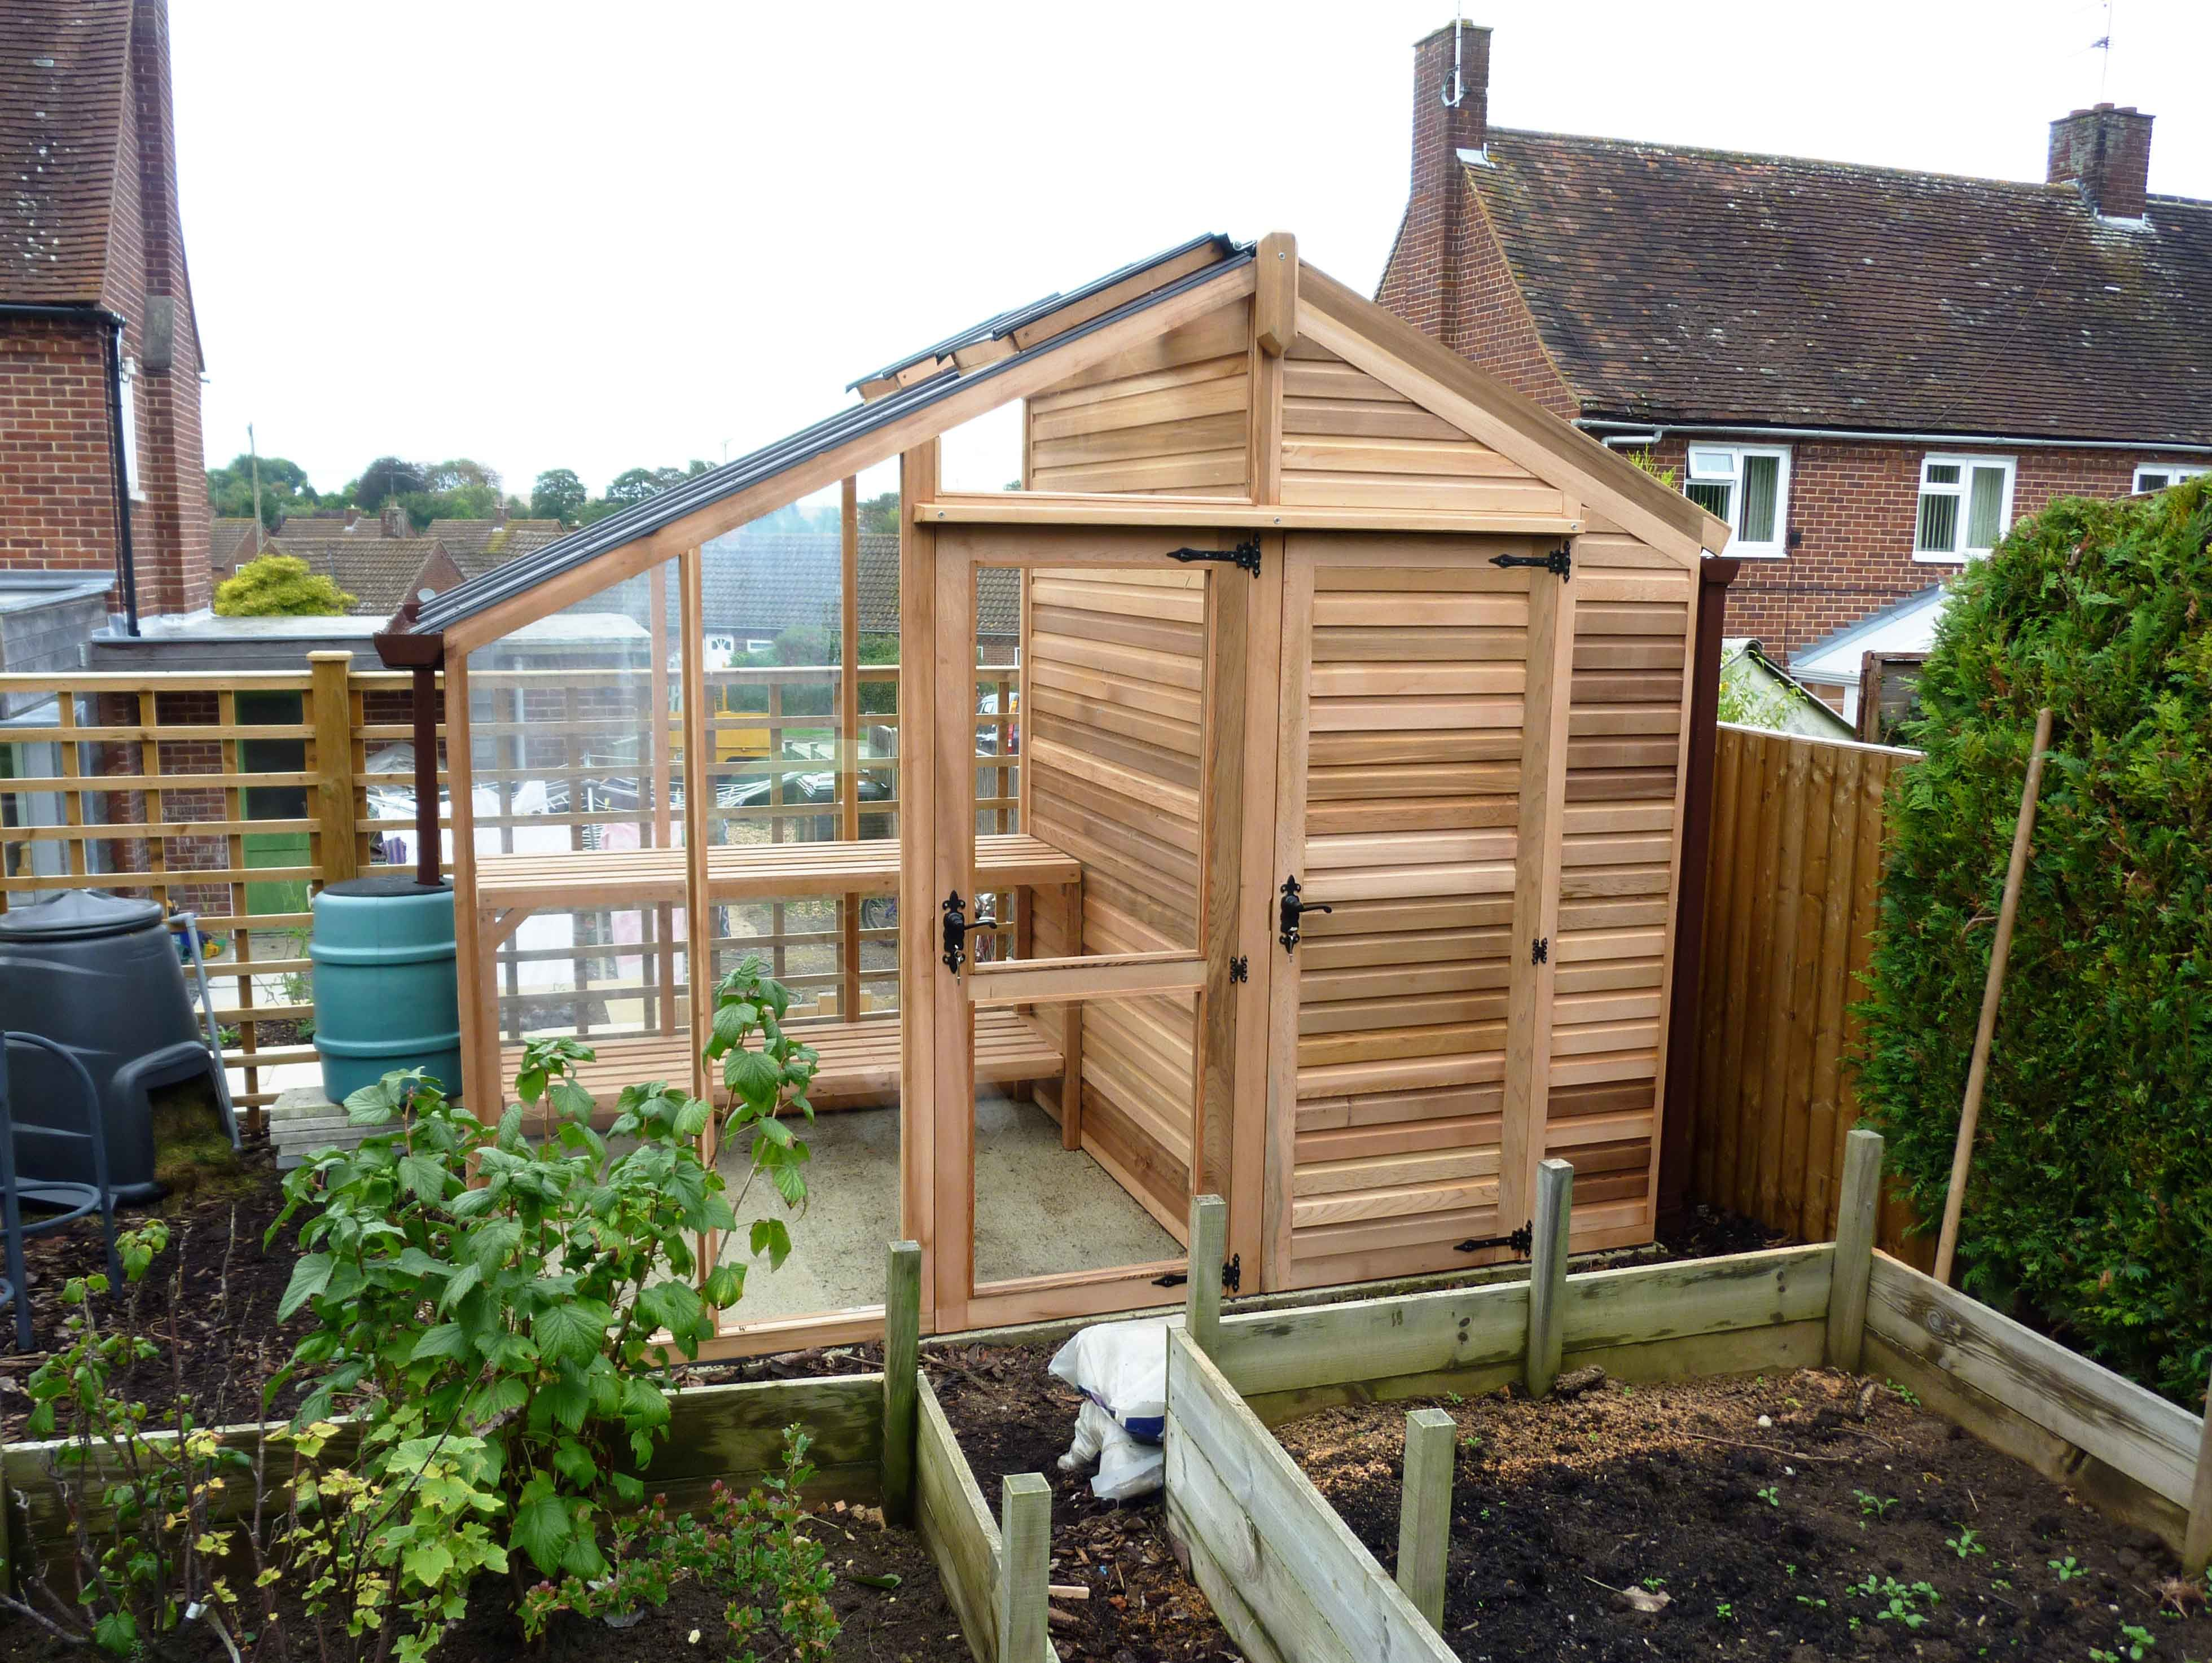 Centaur Shed Combo Greenhouse with Shingle Roof | Greenhouse Ideas ...